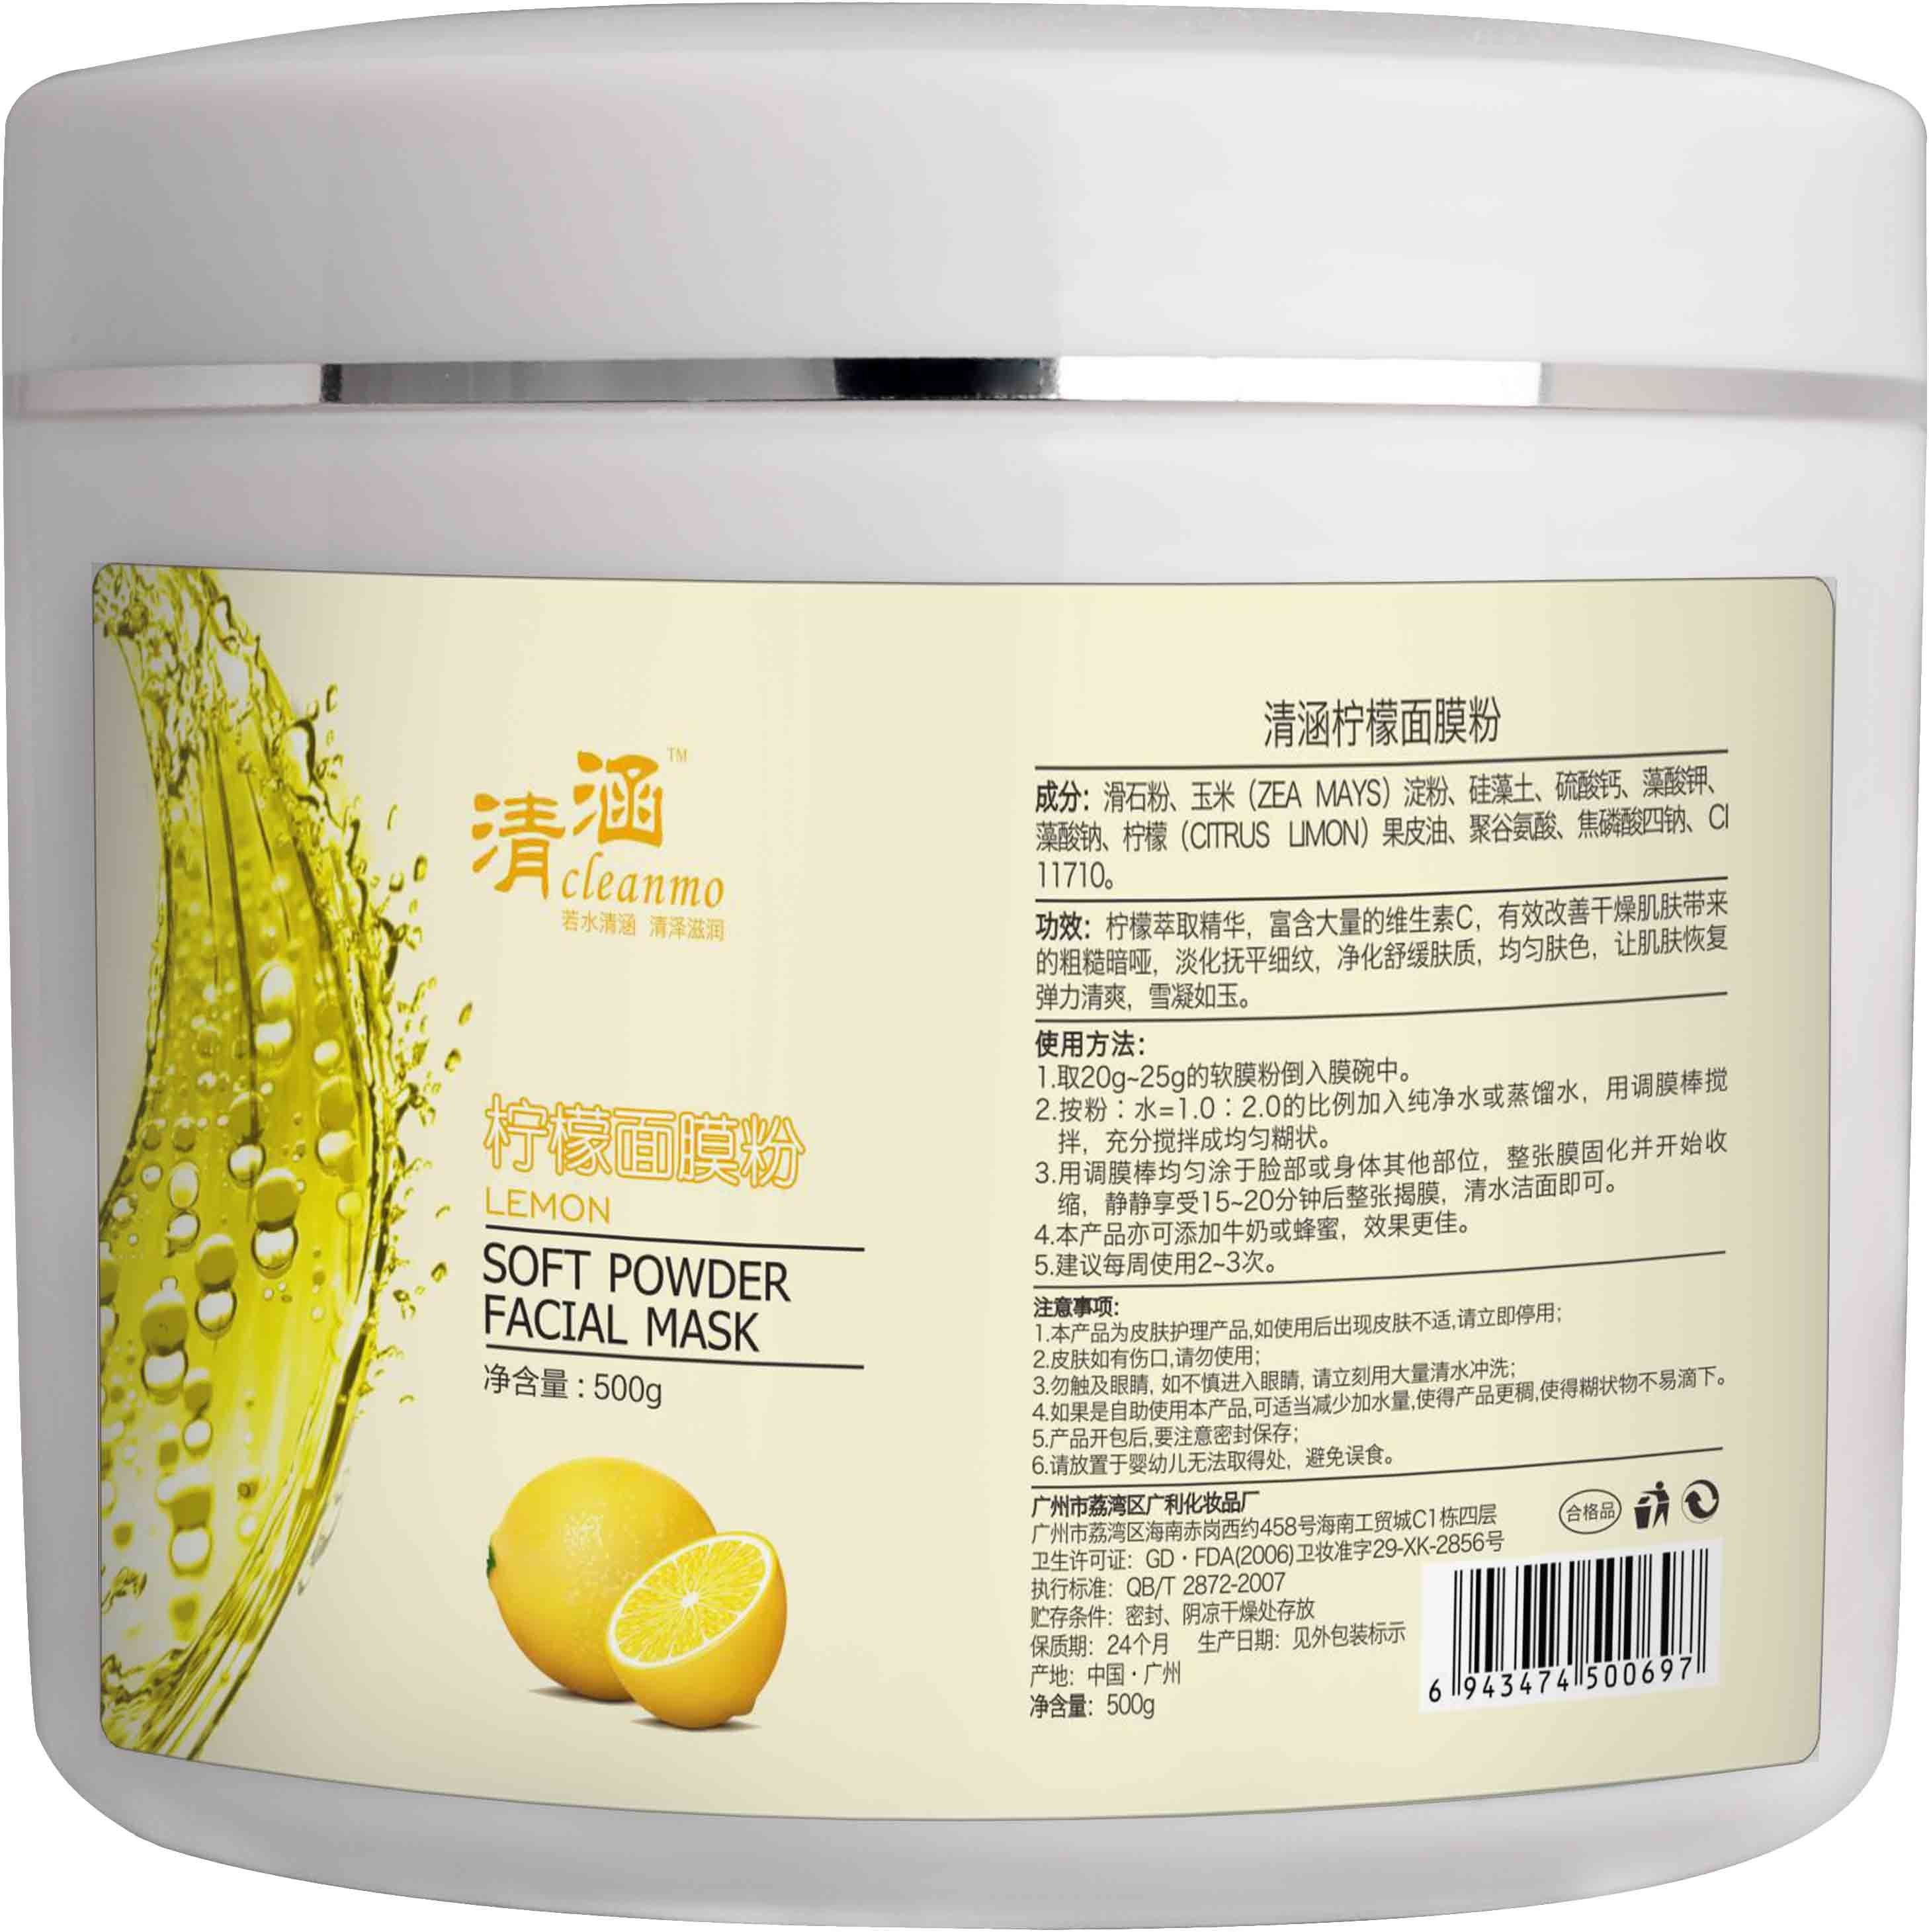 Anti-Wrinkle Lighten and Even Skin Tone Rich in Vitamin C Lemon Mask